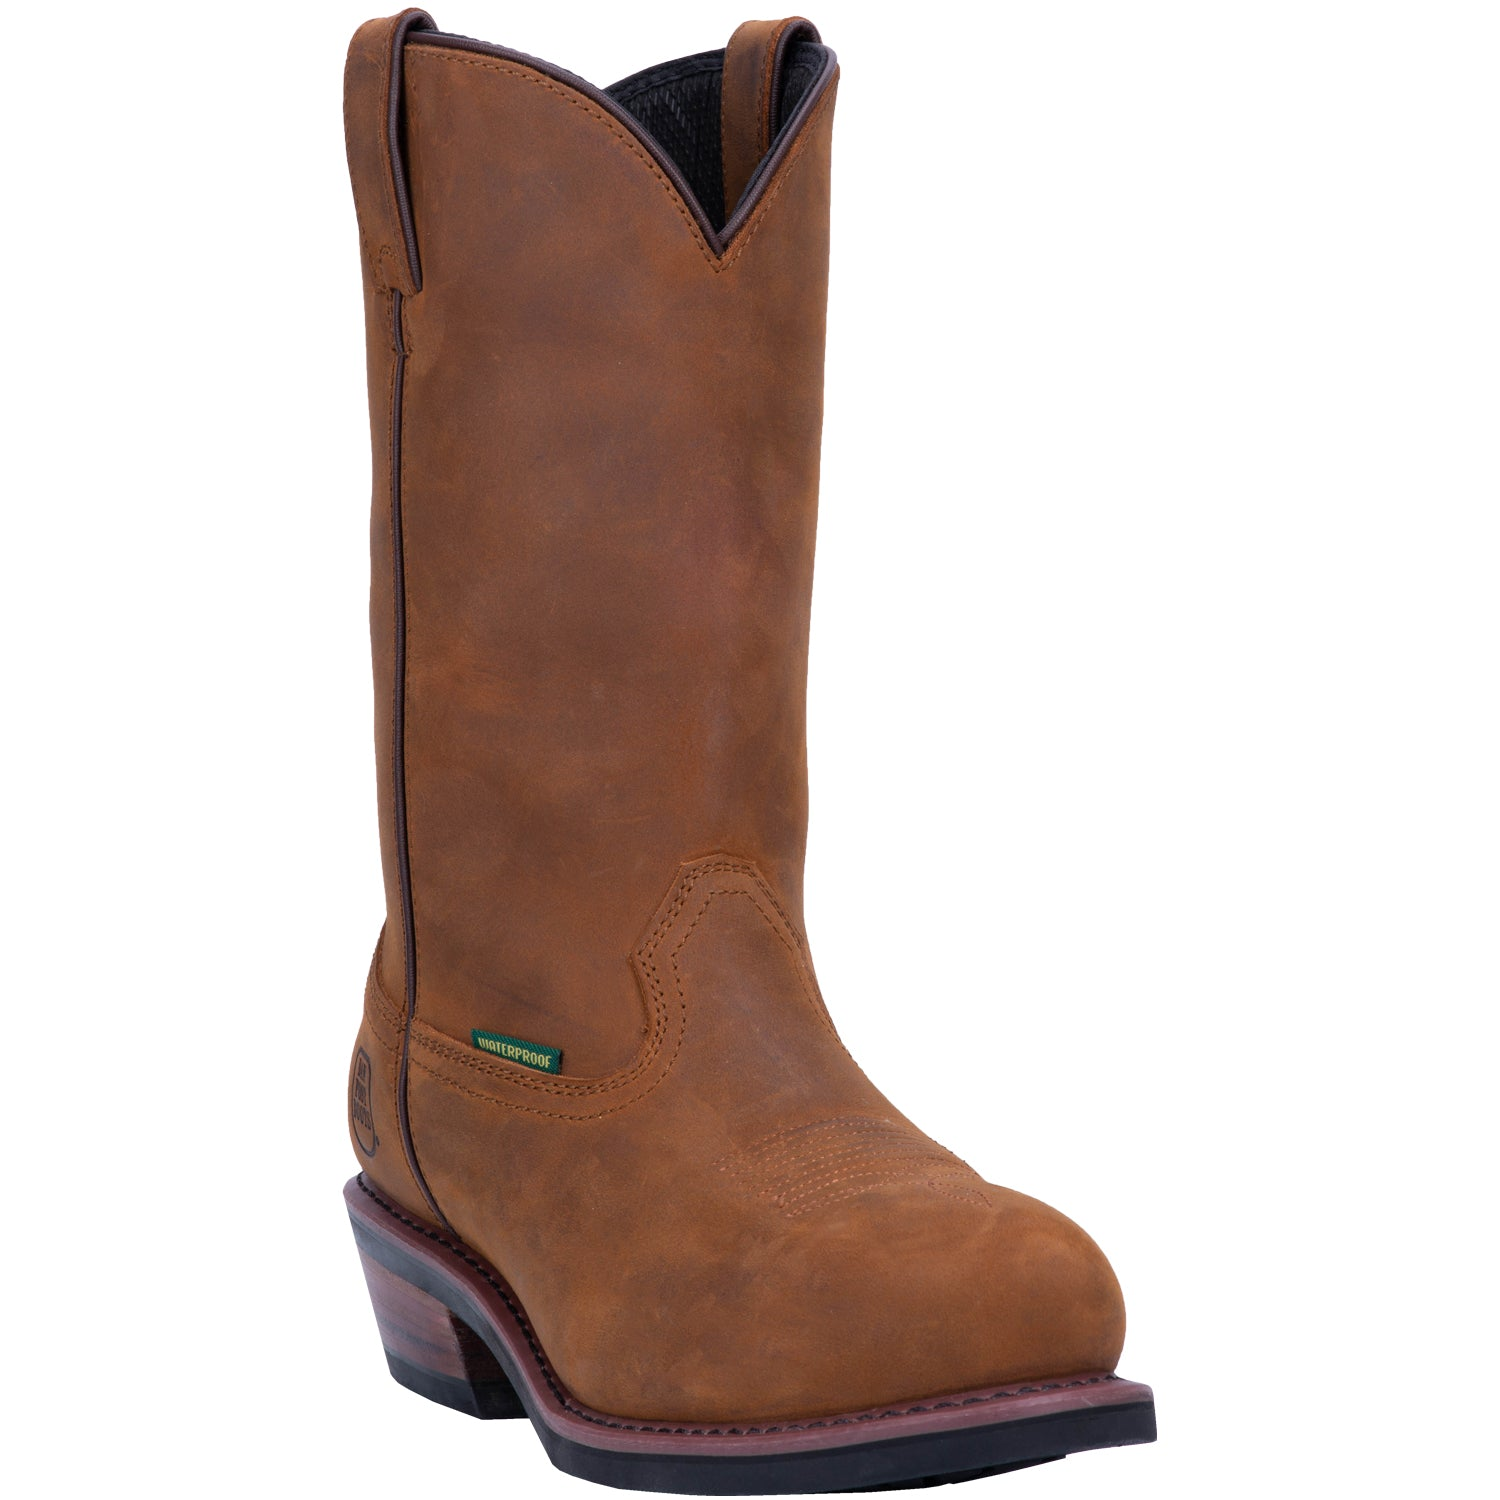 ALBUQUERQUE WATERPROOF LEATHER BOOT 15521805041706